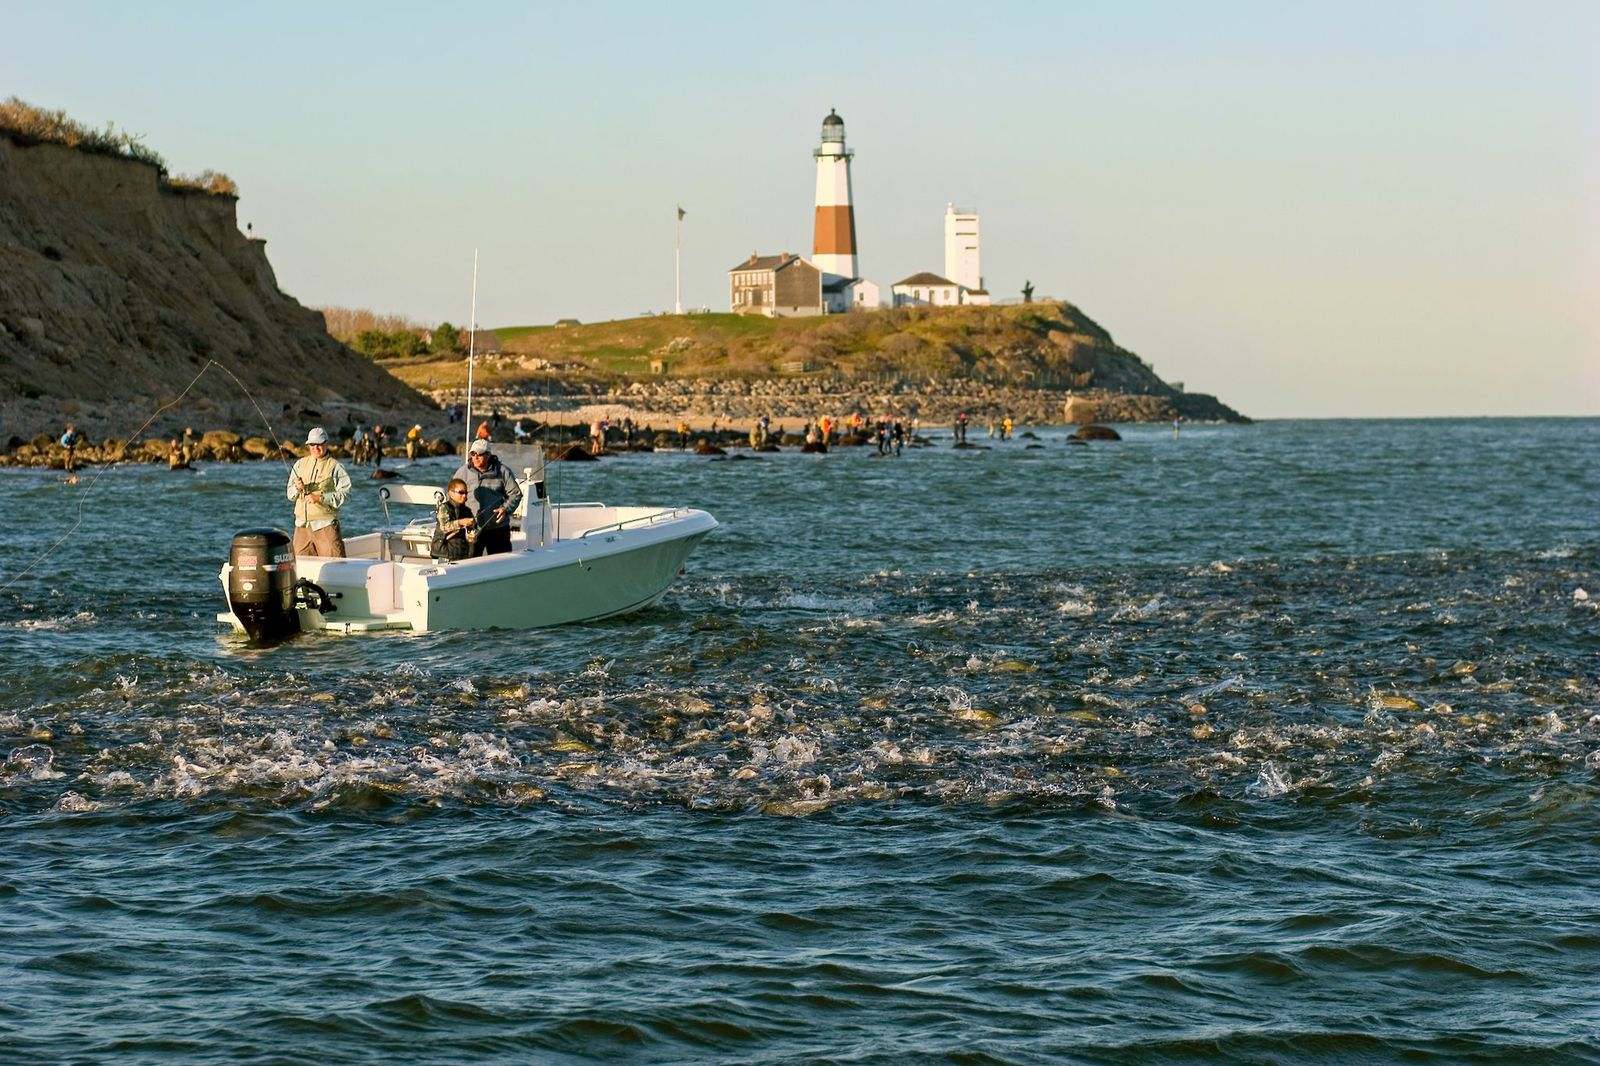 Westlake Marina: An Inside Look at Boating in Montauk